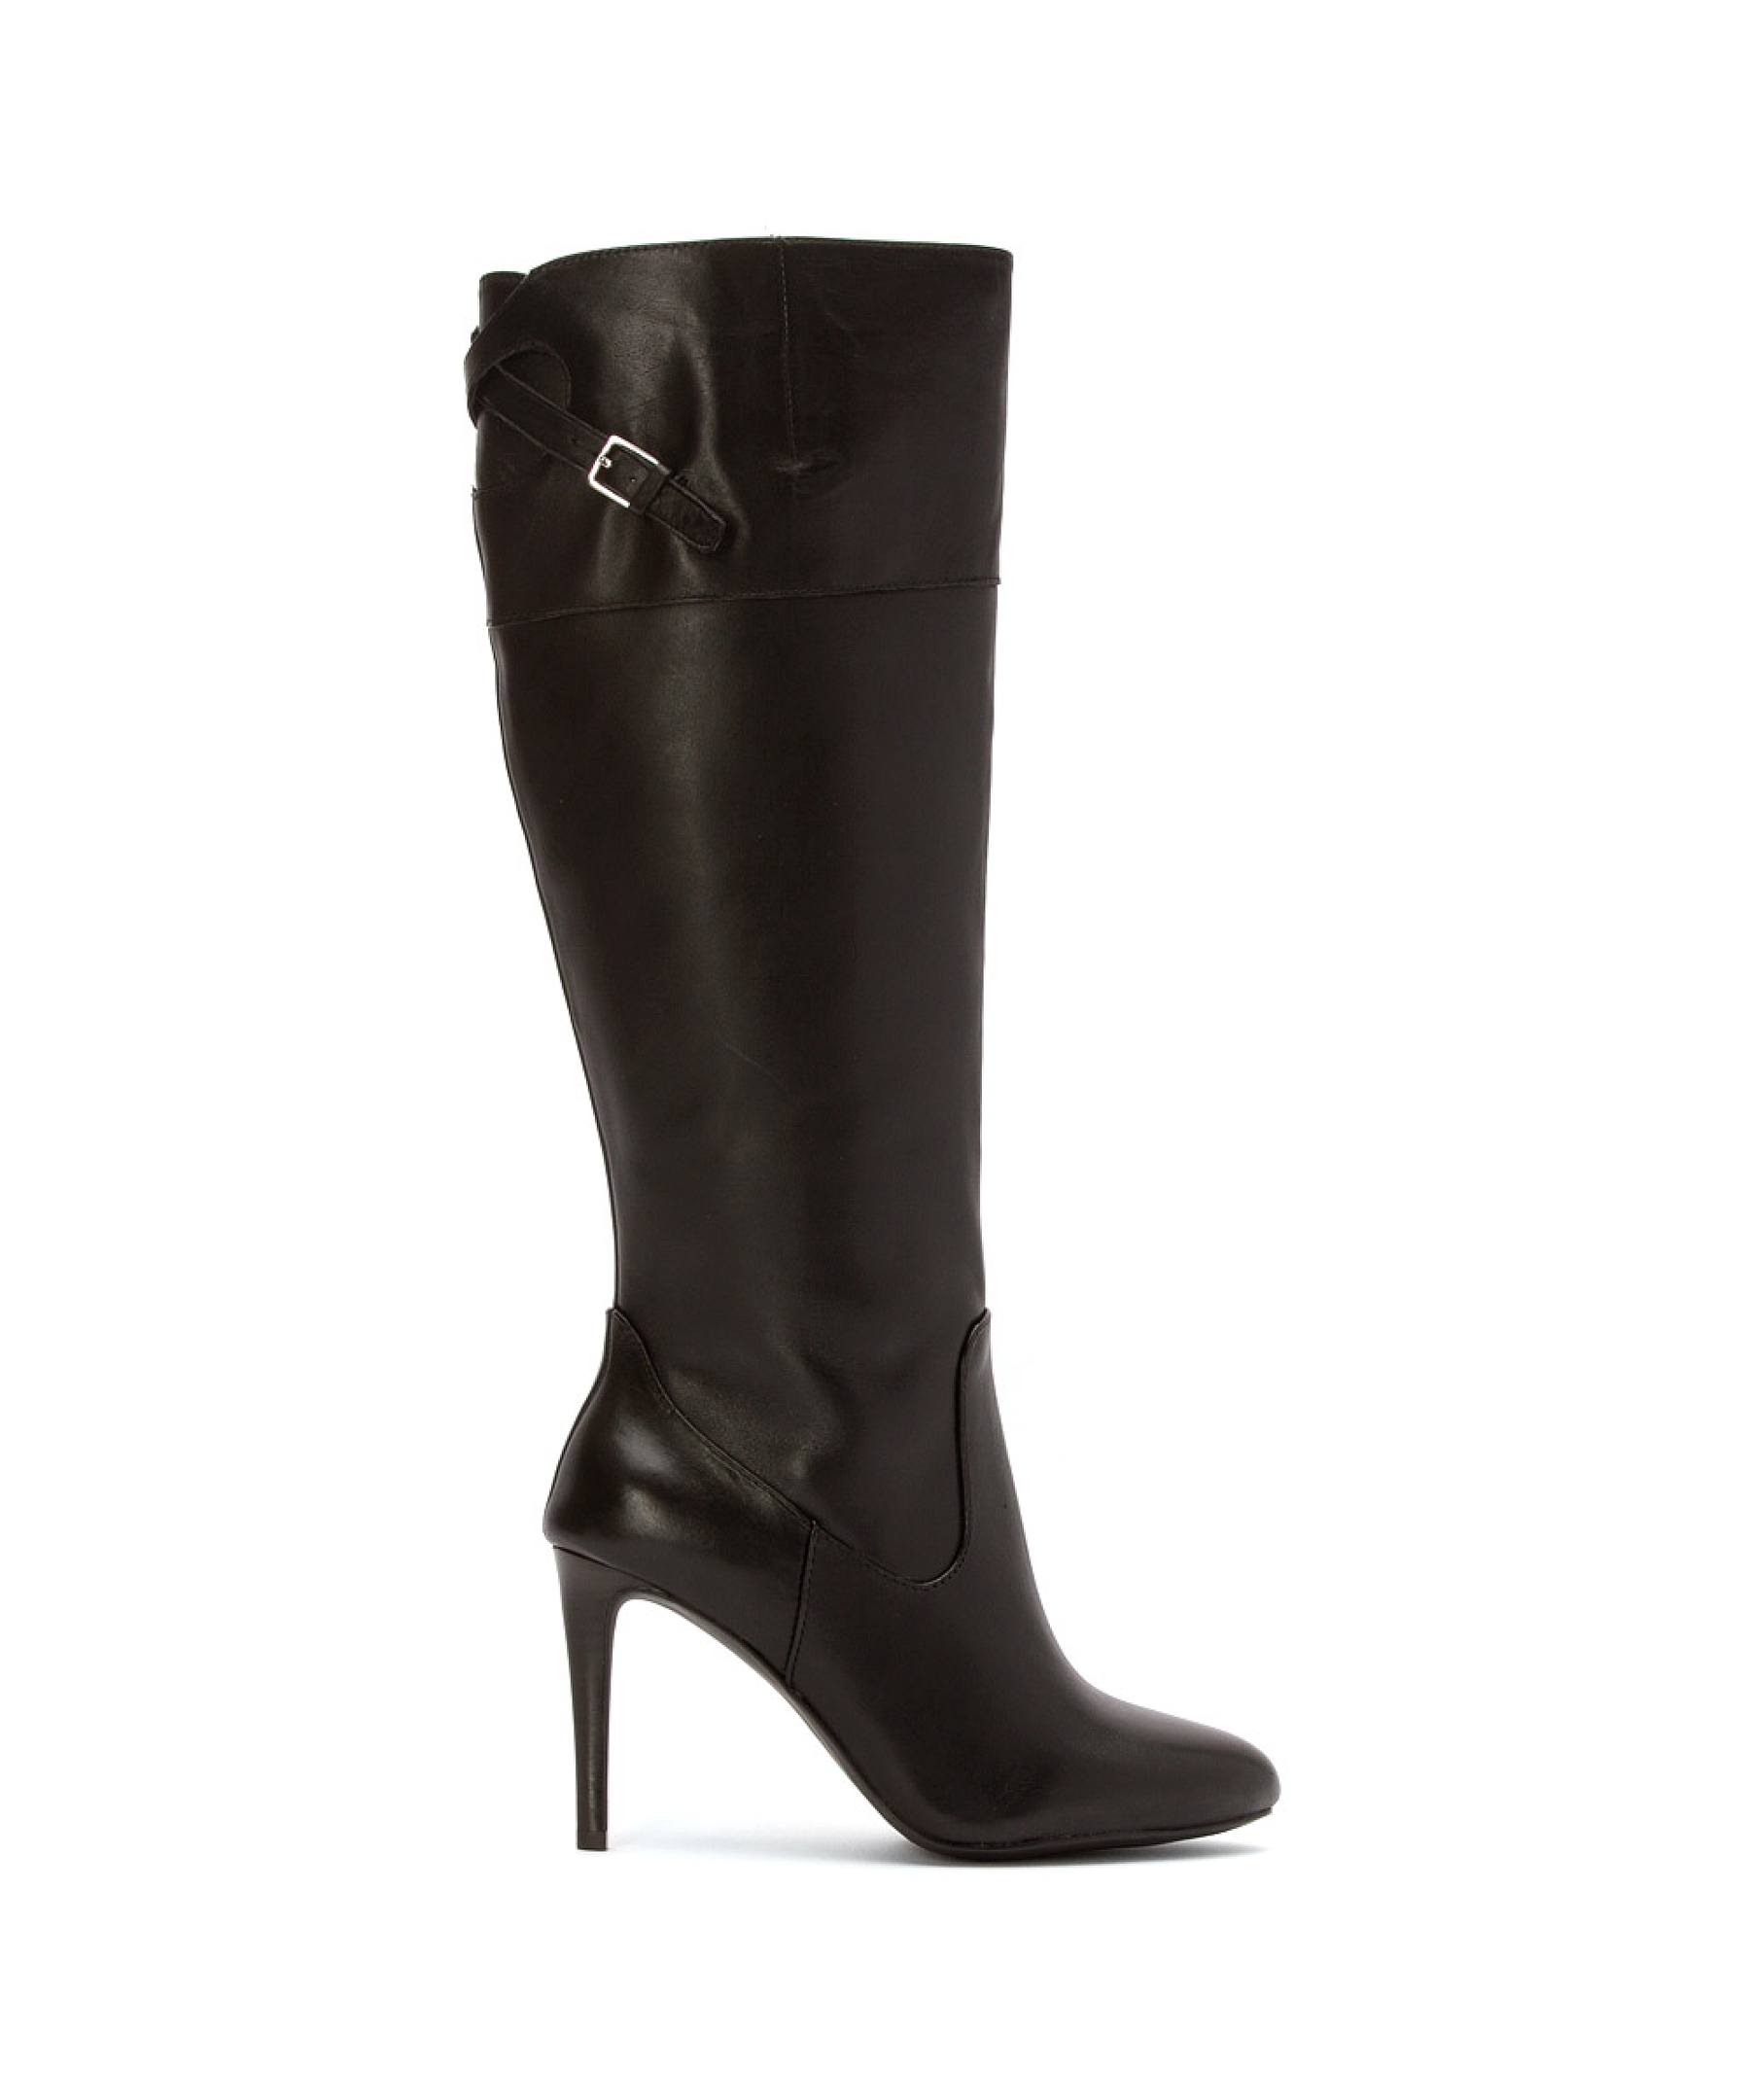 Innovative Clothing Shoes Amp Accessories Gt Women39s Shoes Gt Boots